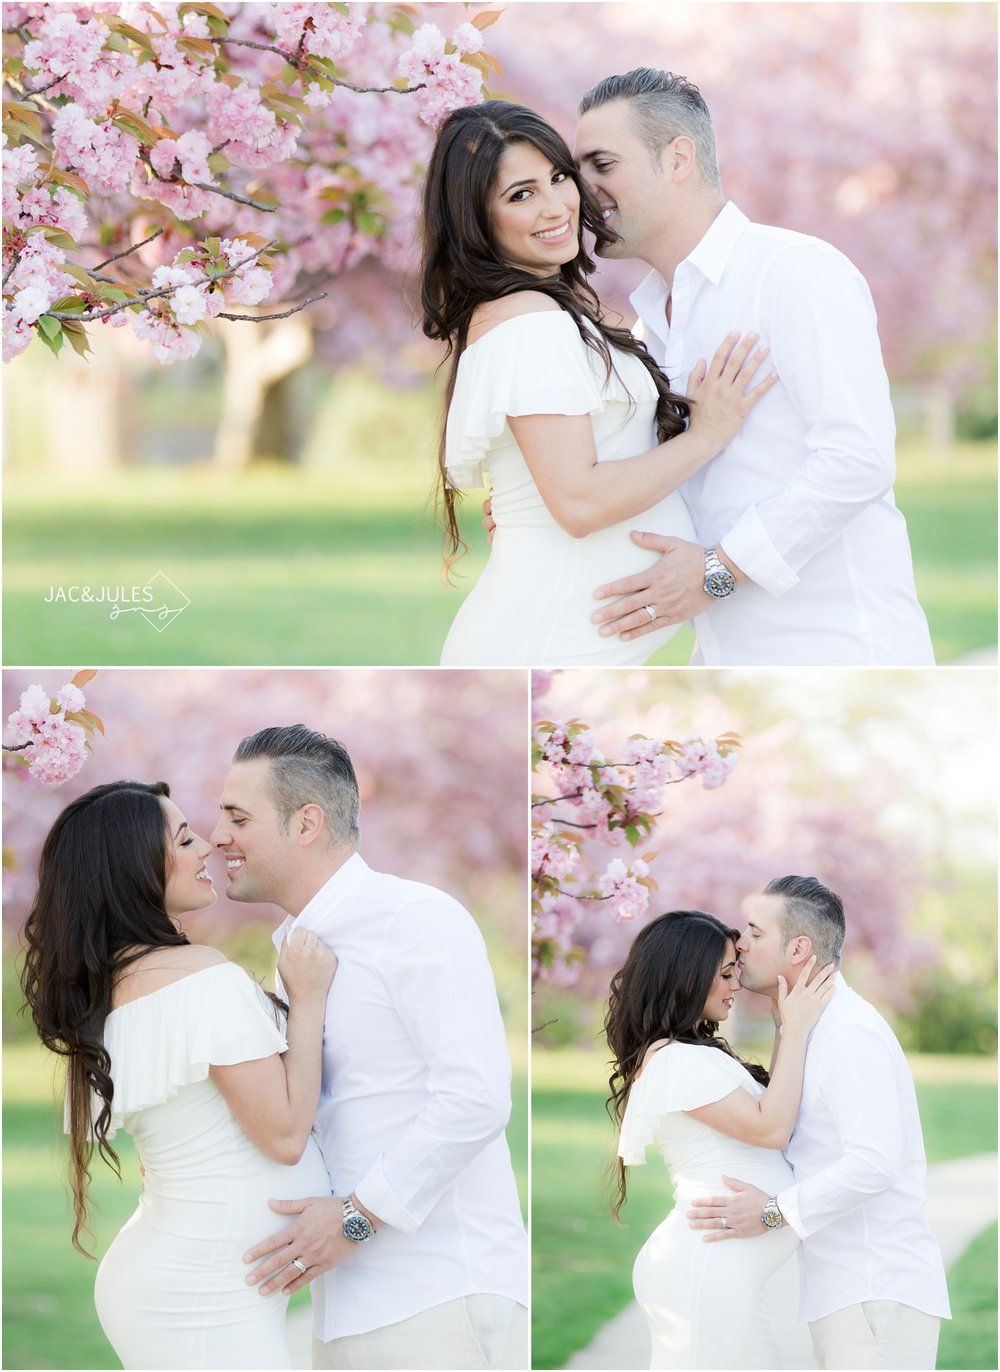 Sweet, loving maternity photos with cherry blossoms at Divine Park in Spring Lake, NJ.